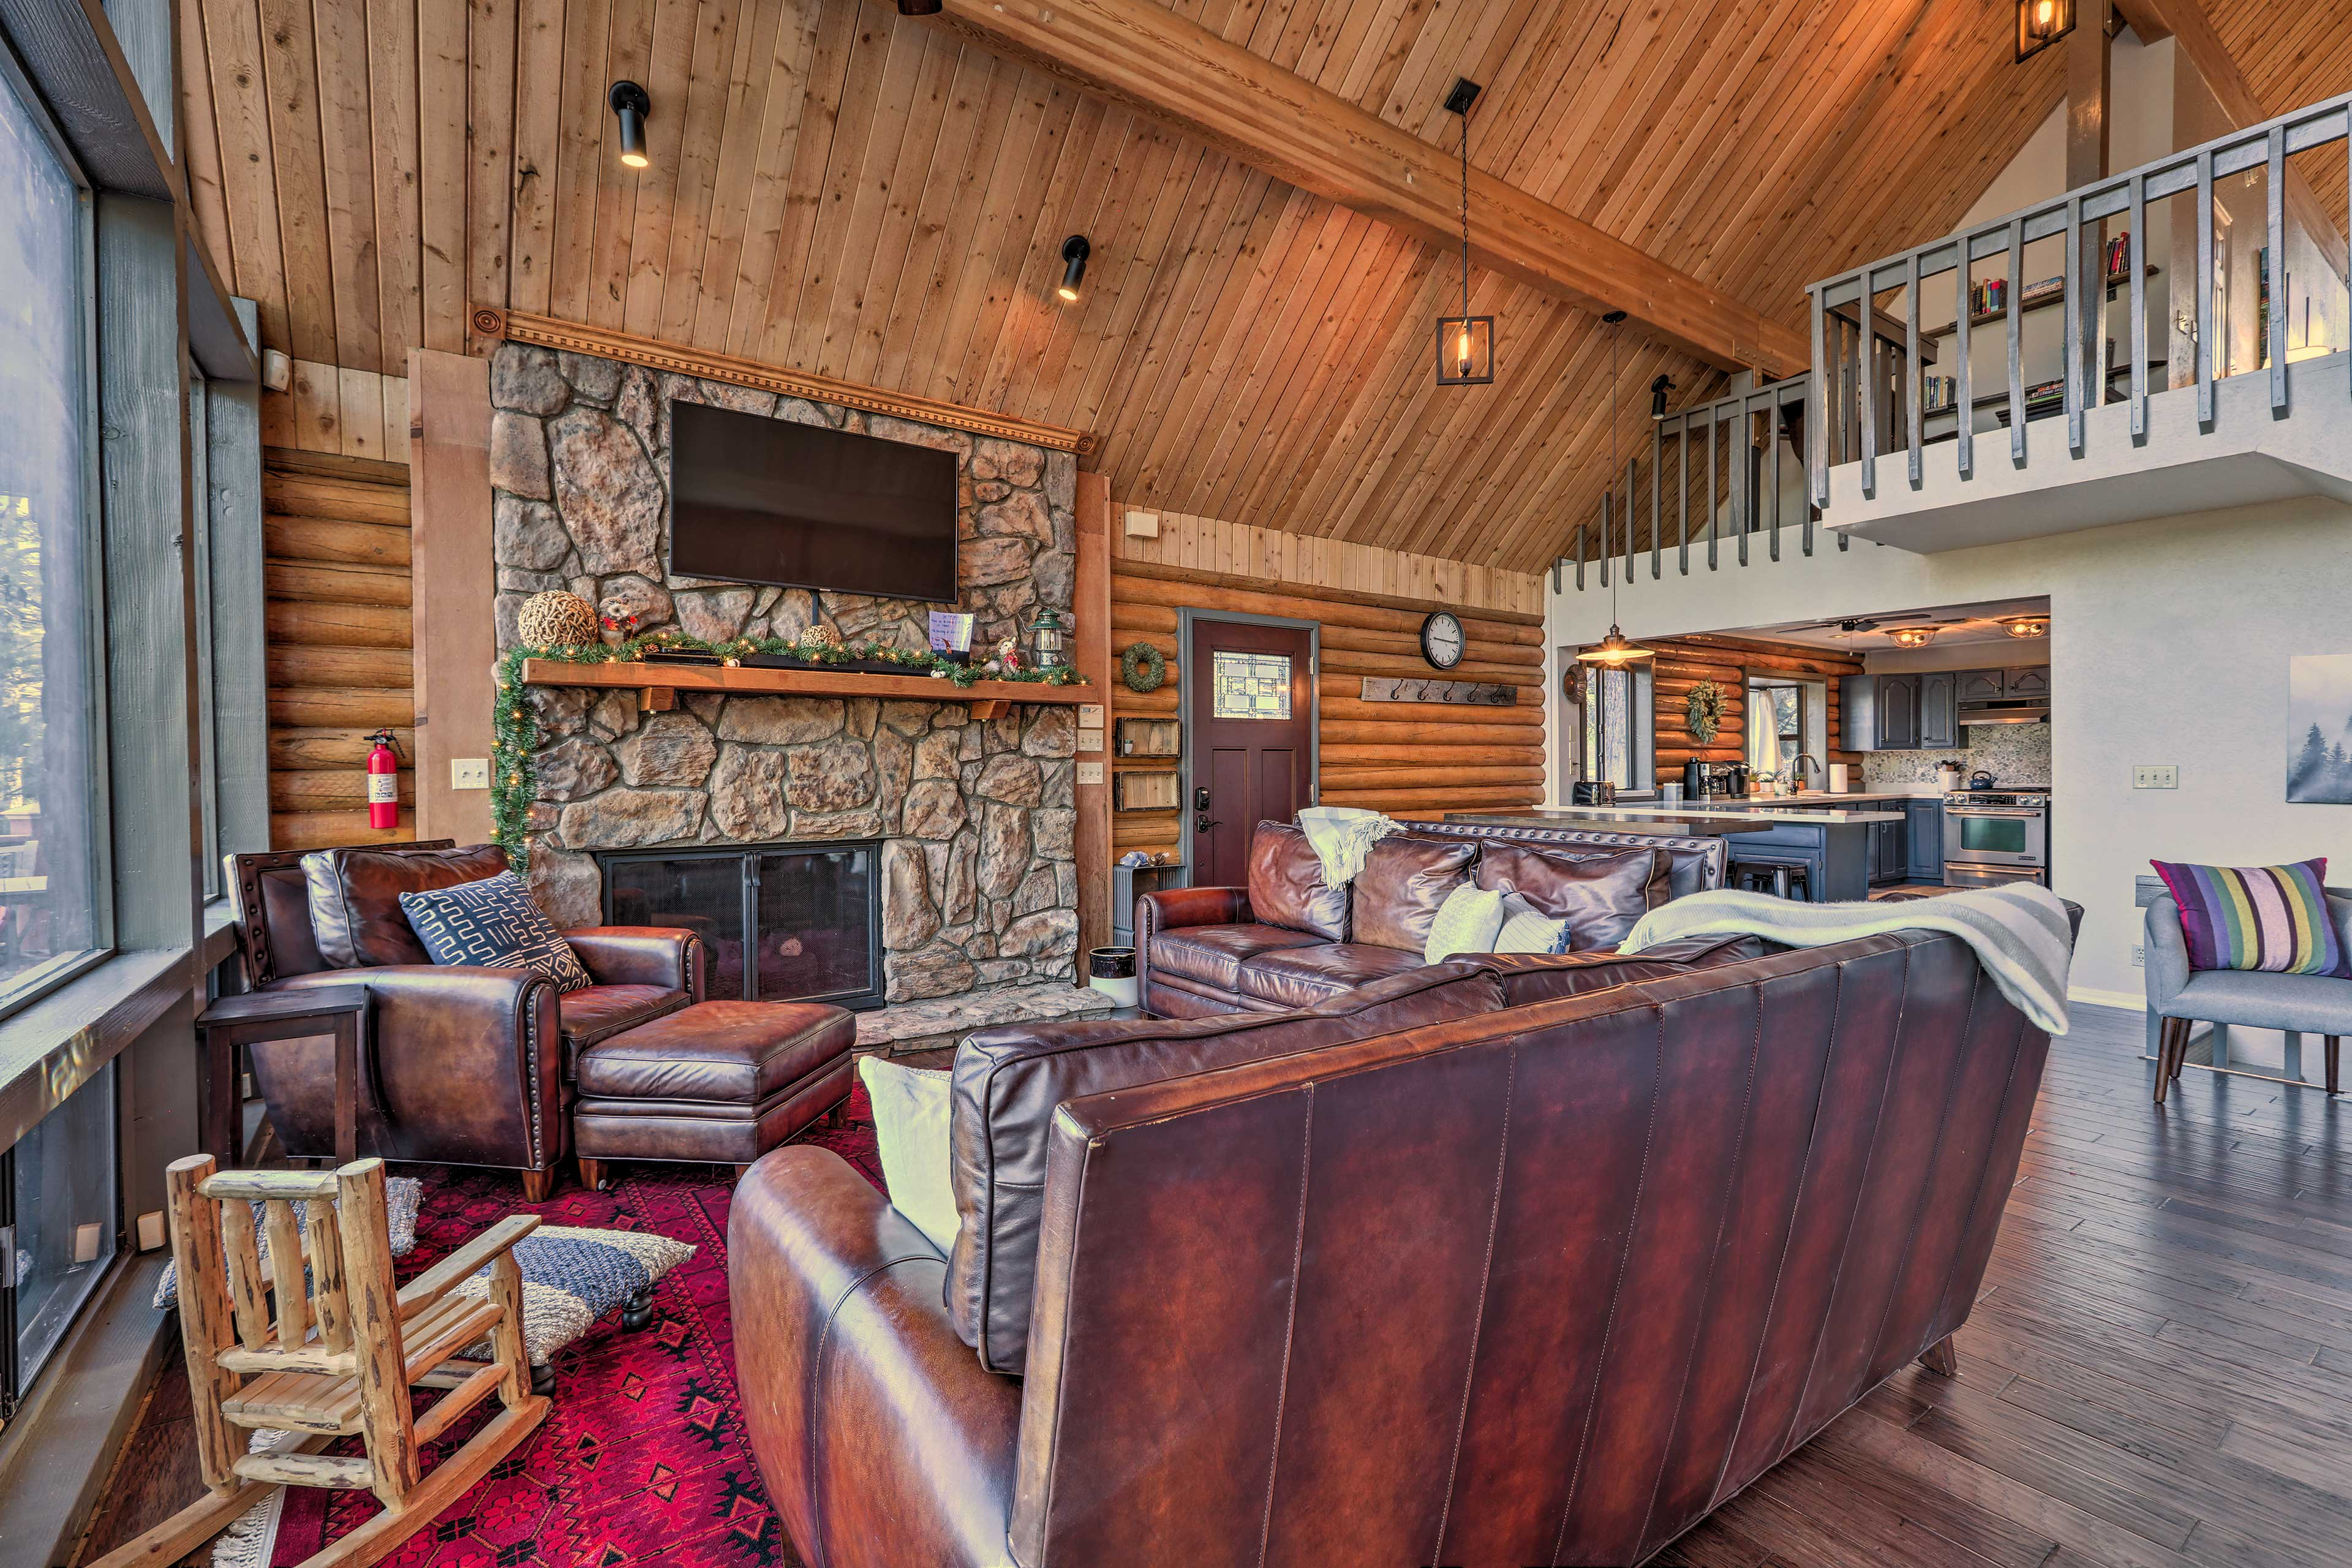 The massive living room boasts cathedral ceilings, knotty-pine accents, and more